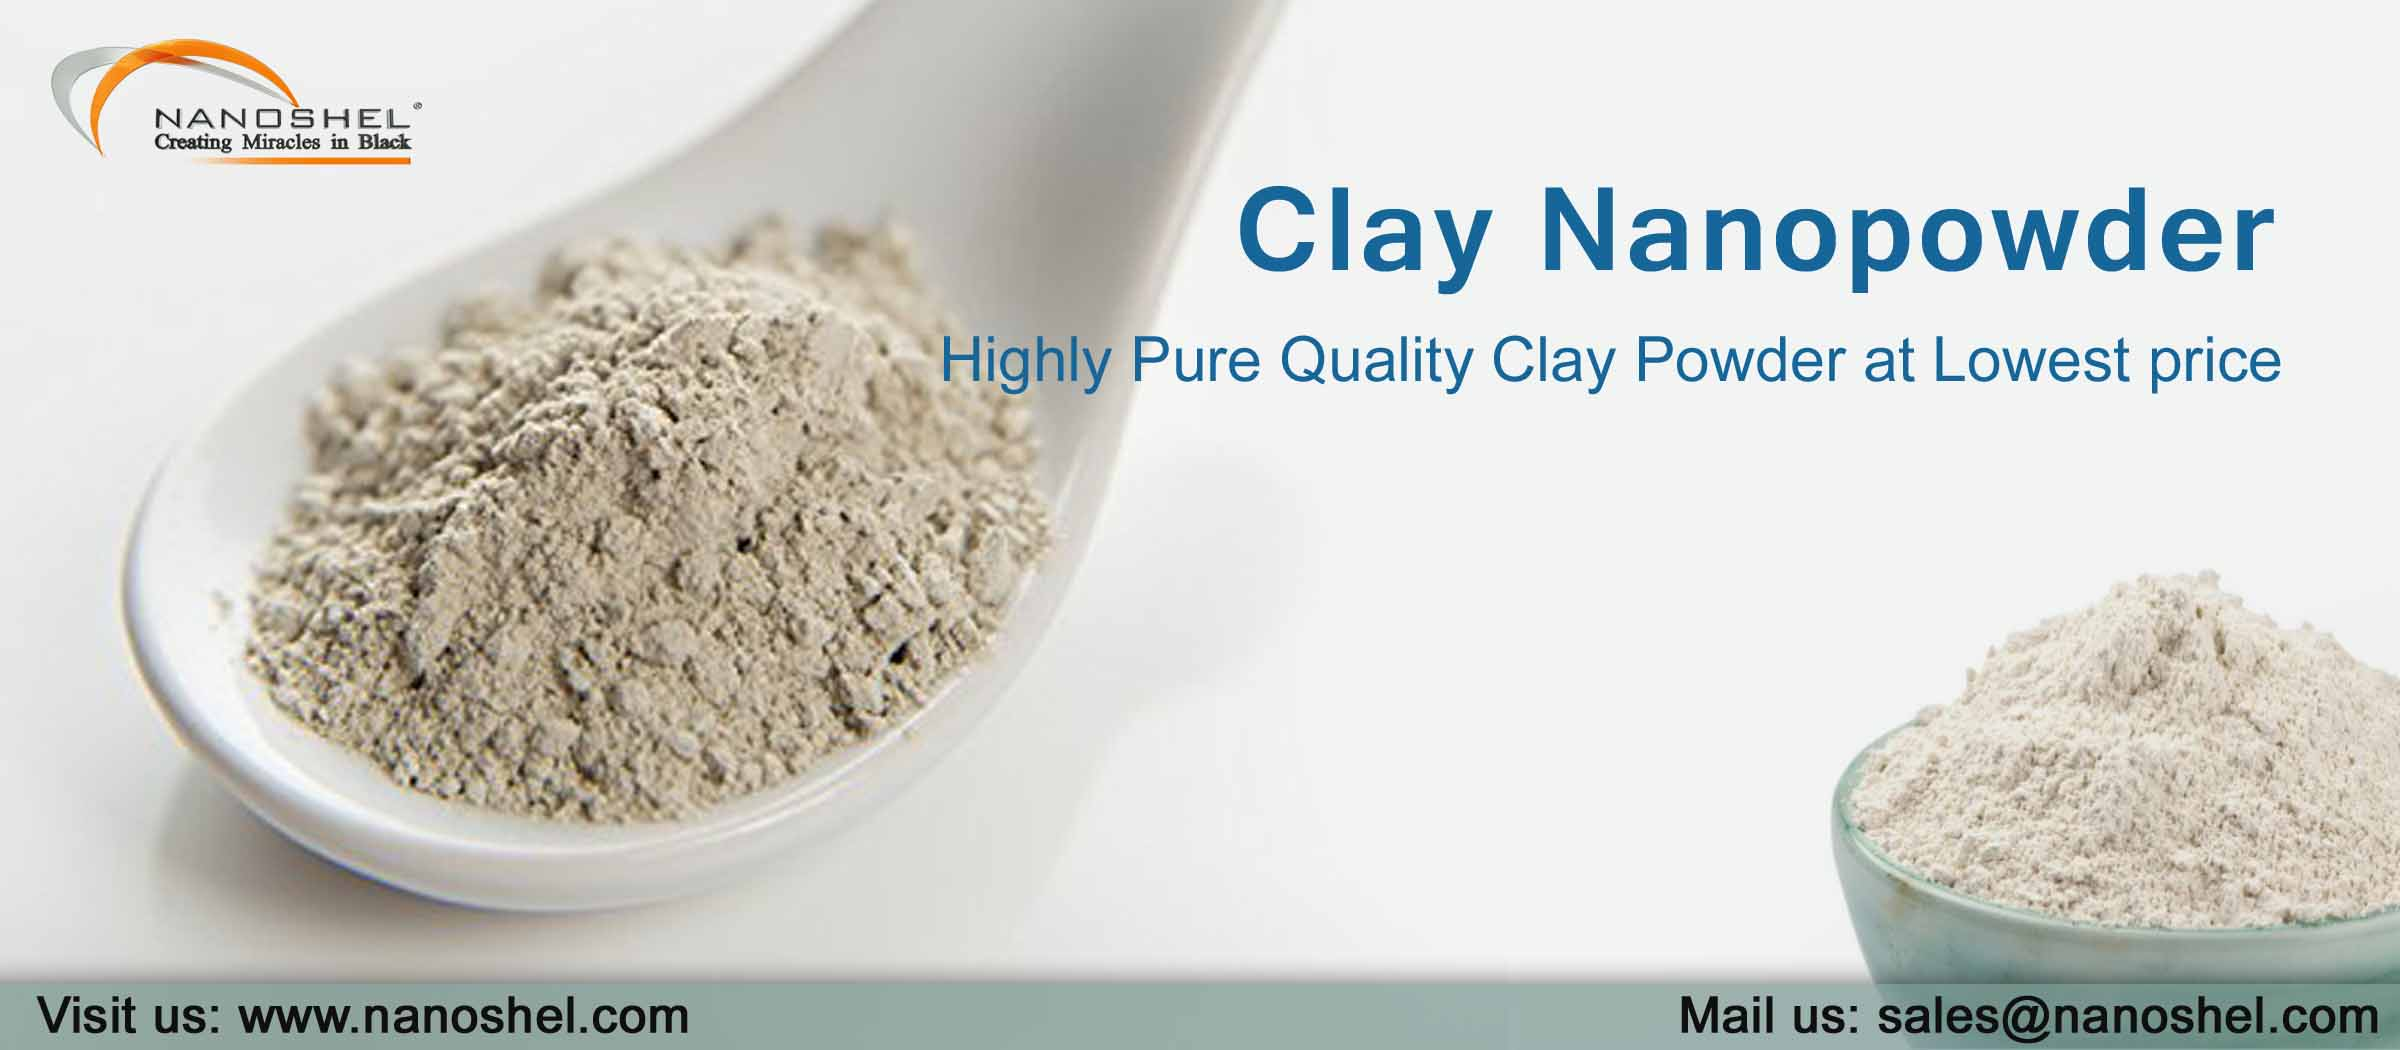 Saponite Clay Nanoparticles